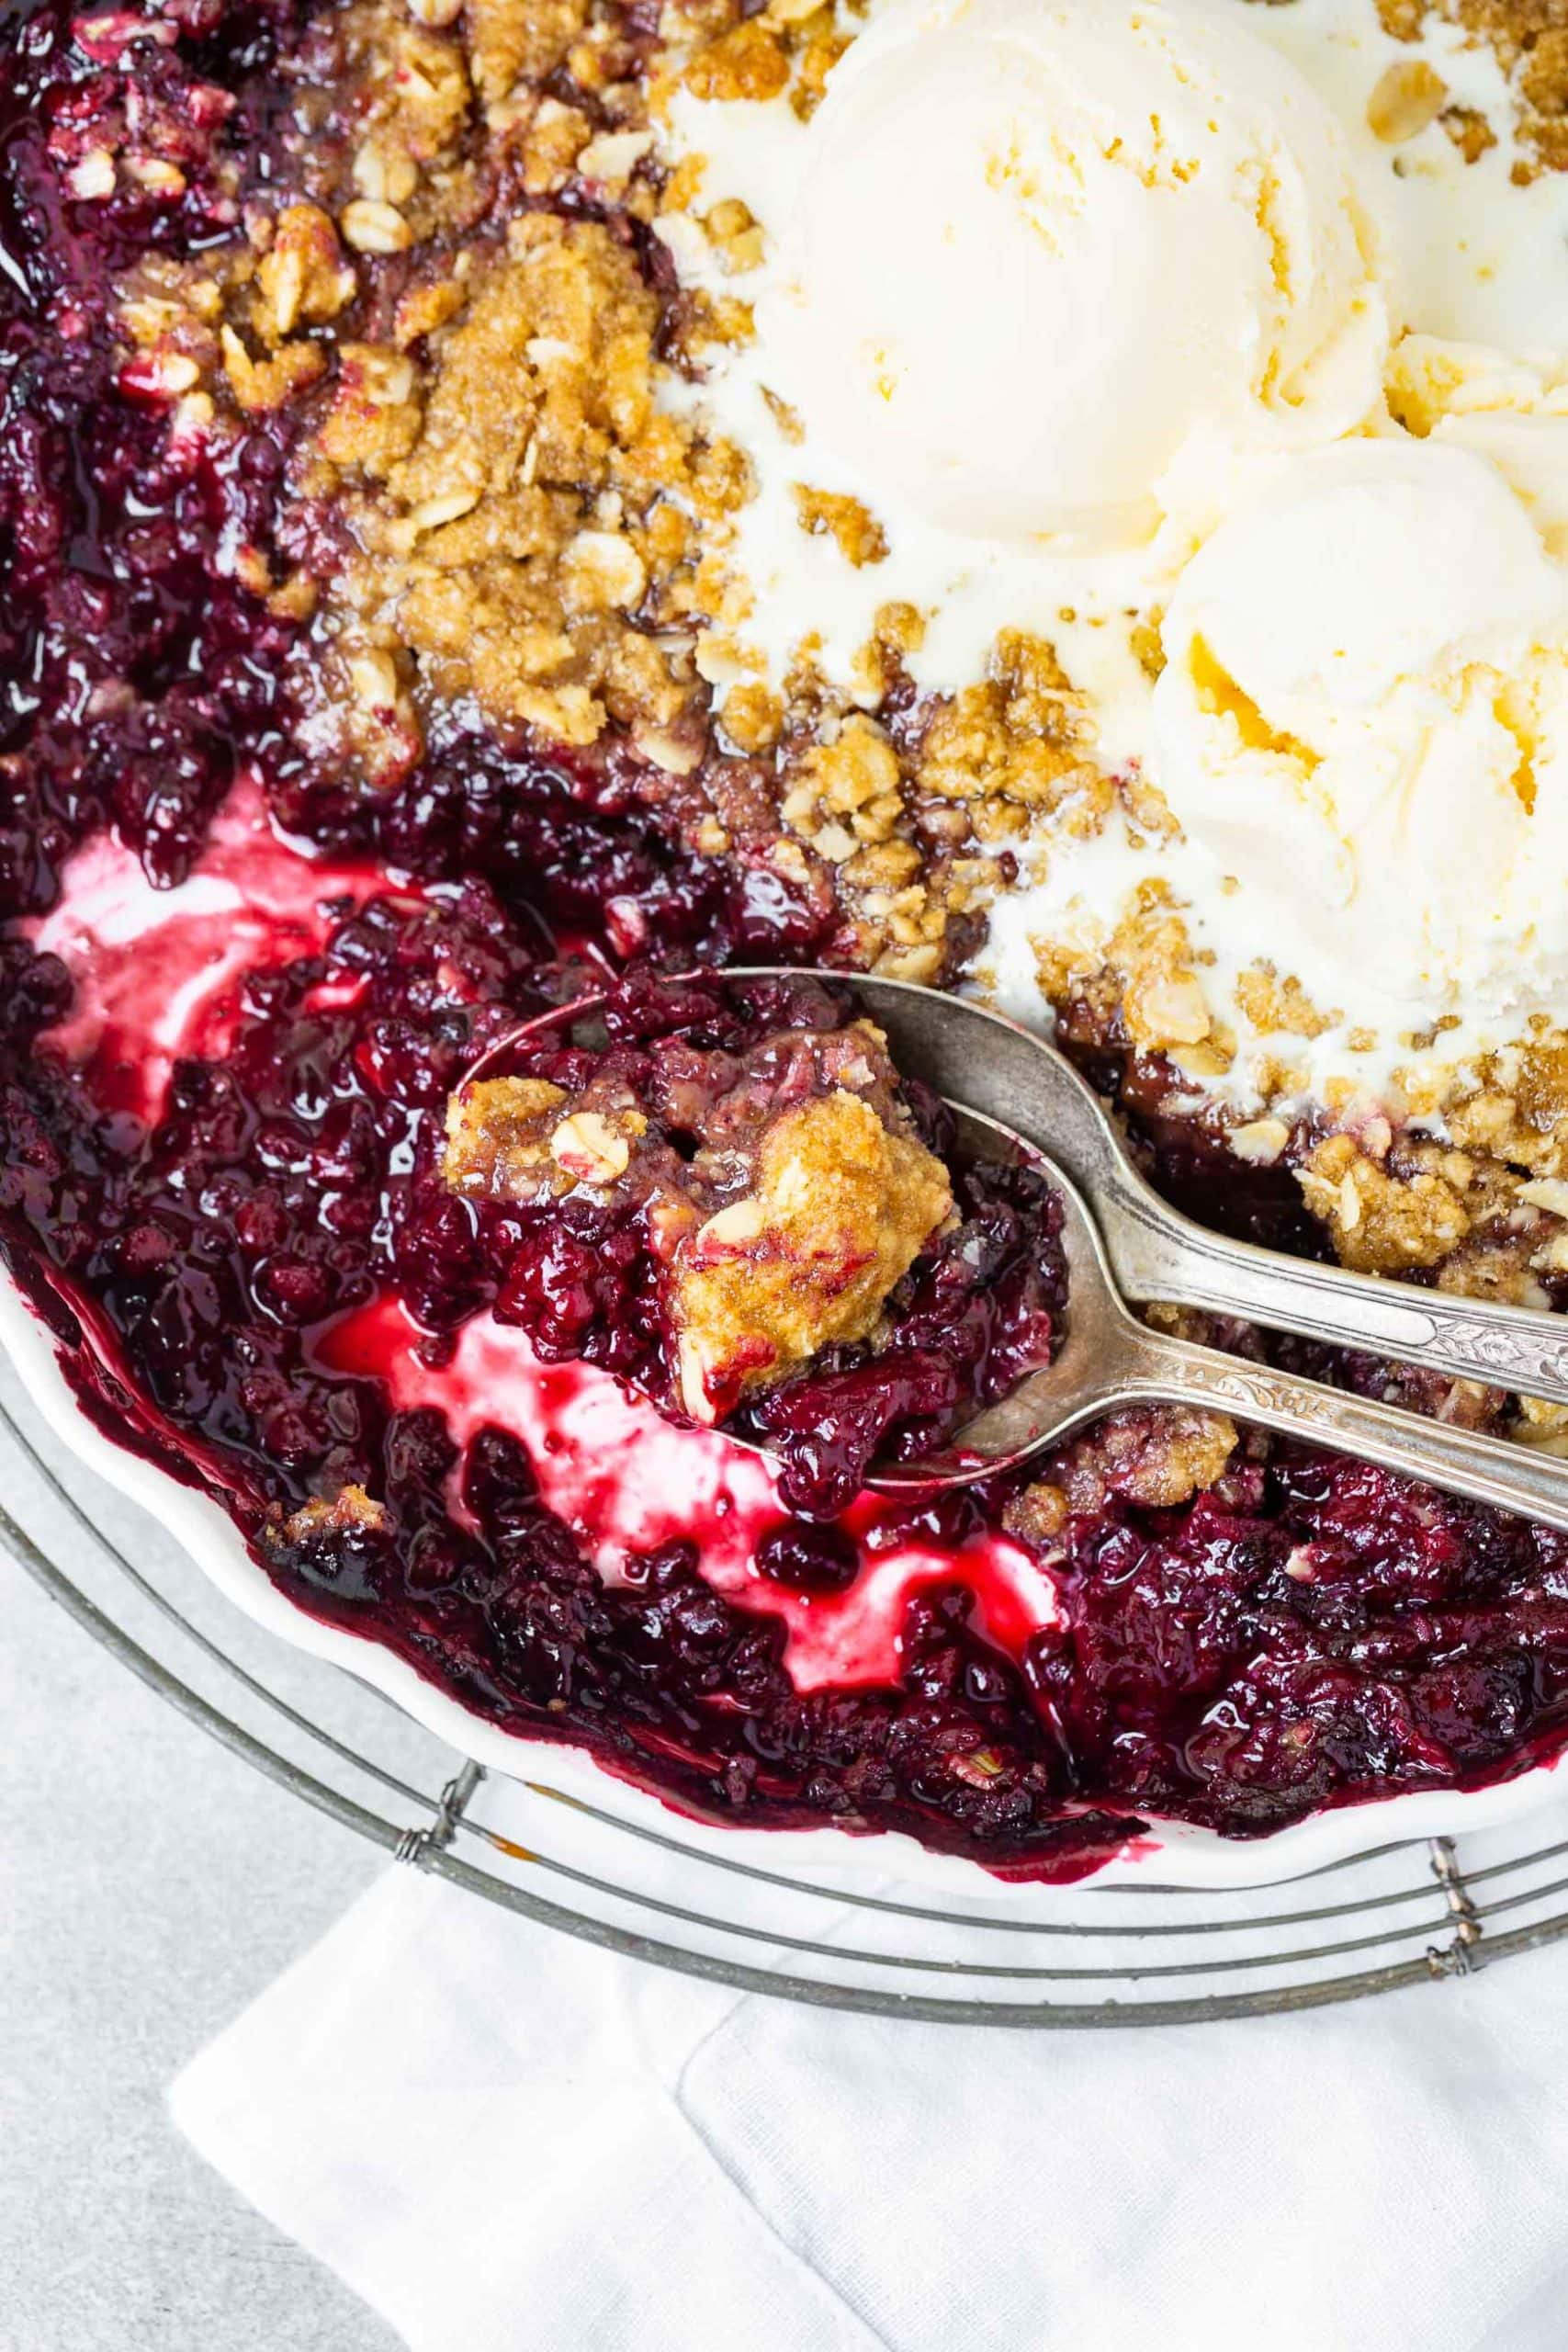 A close up photo of a marionberry crisp that has been served out of. two silver spoons are in the pan and it is topped with two scoops of melted vanilla ice cream.